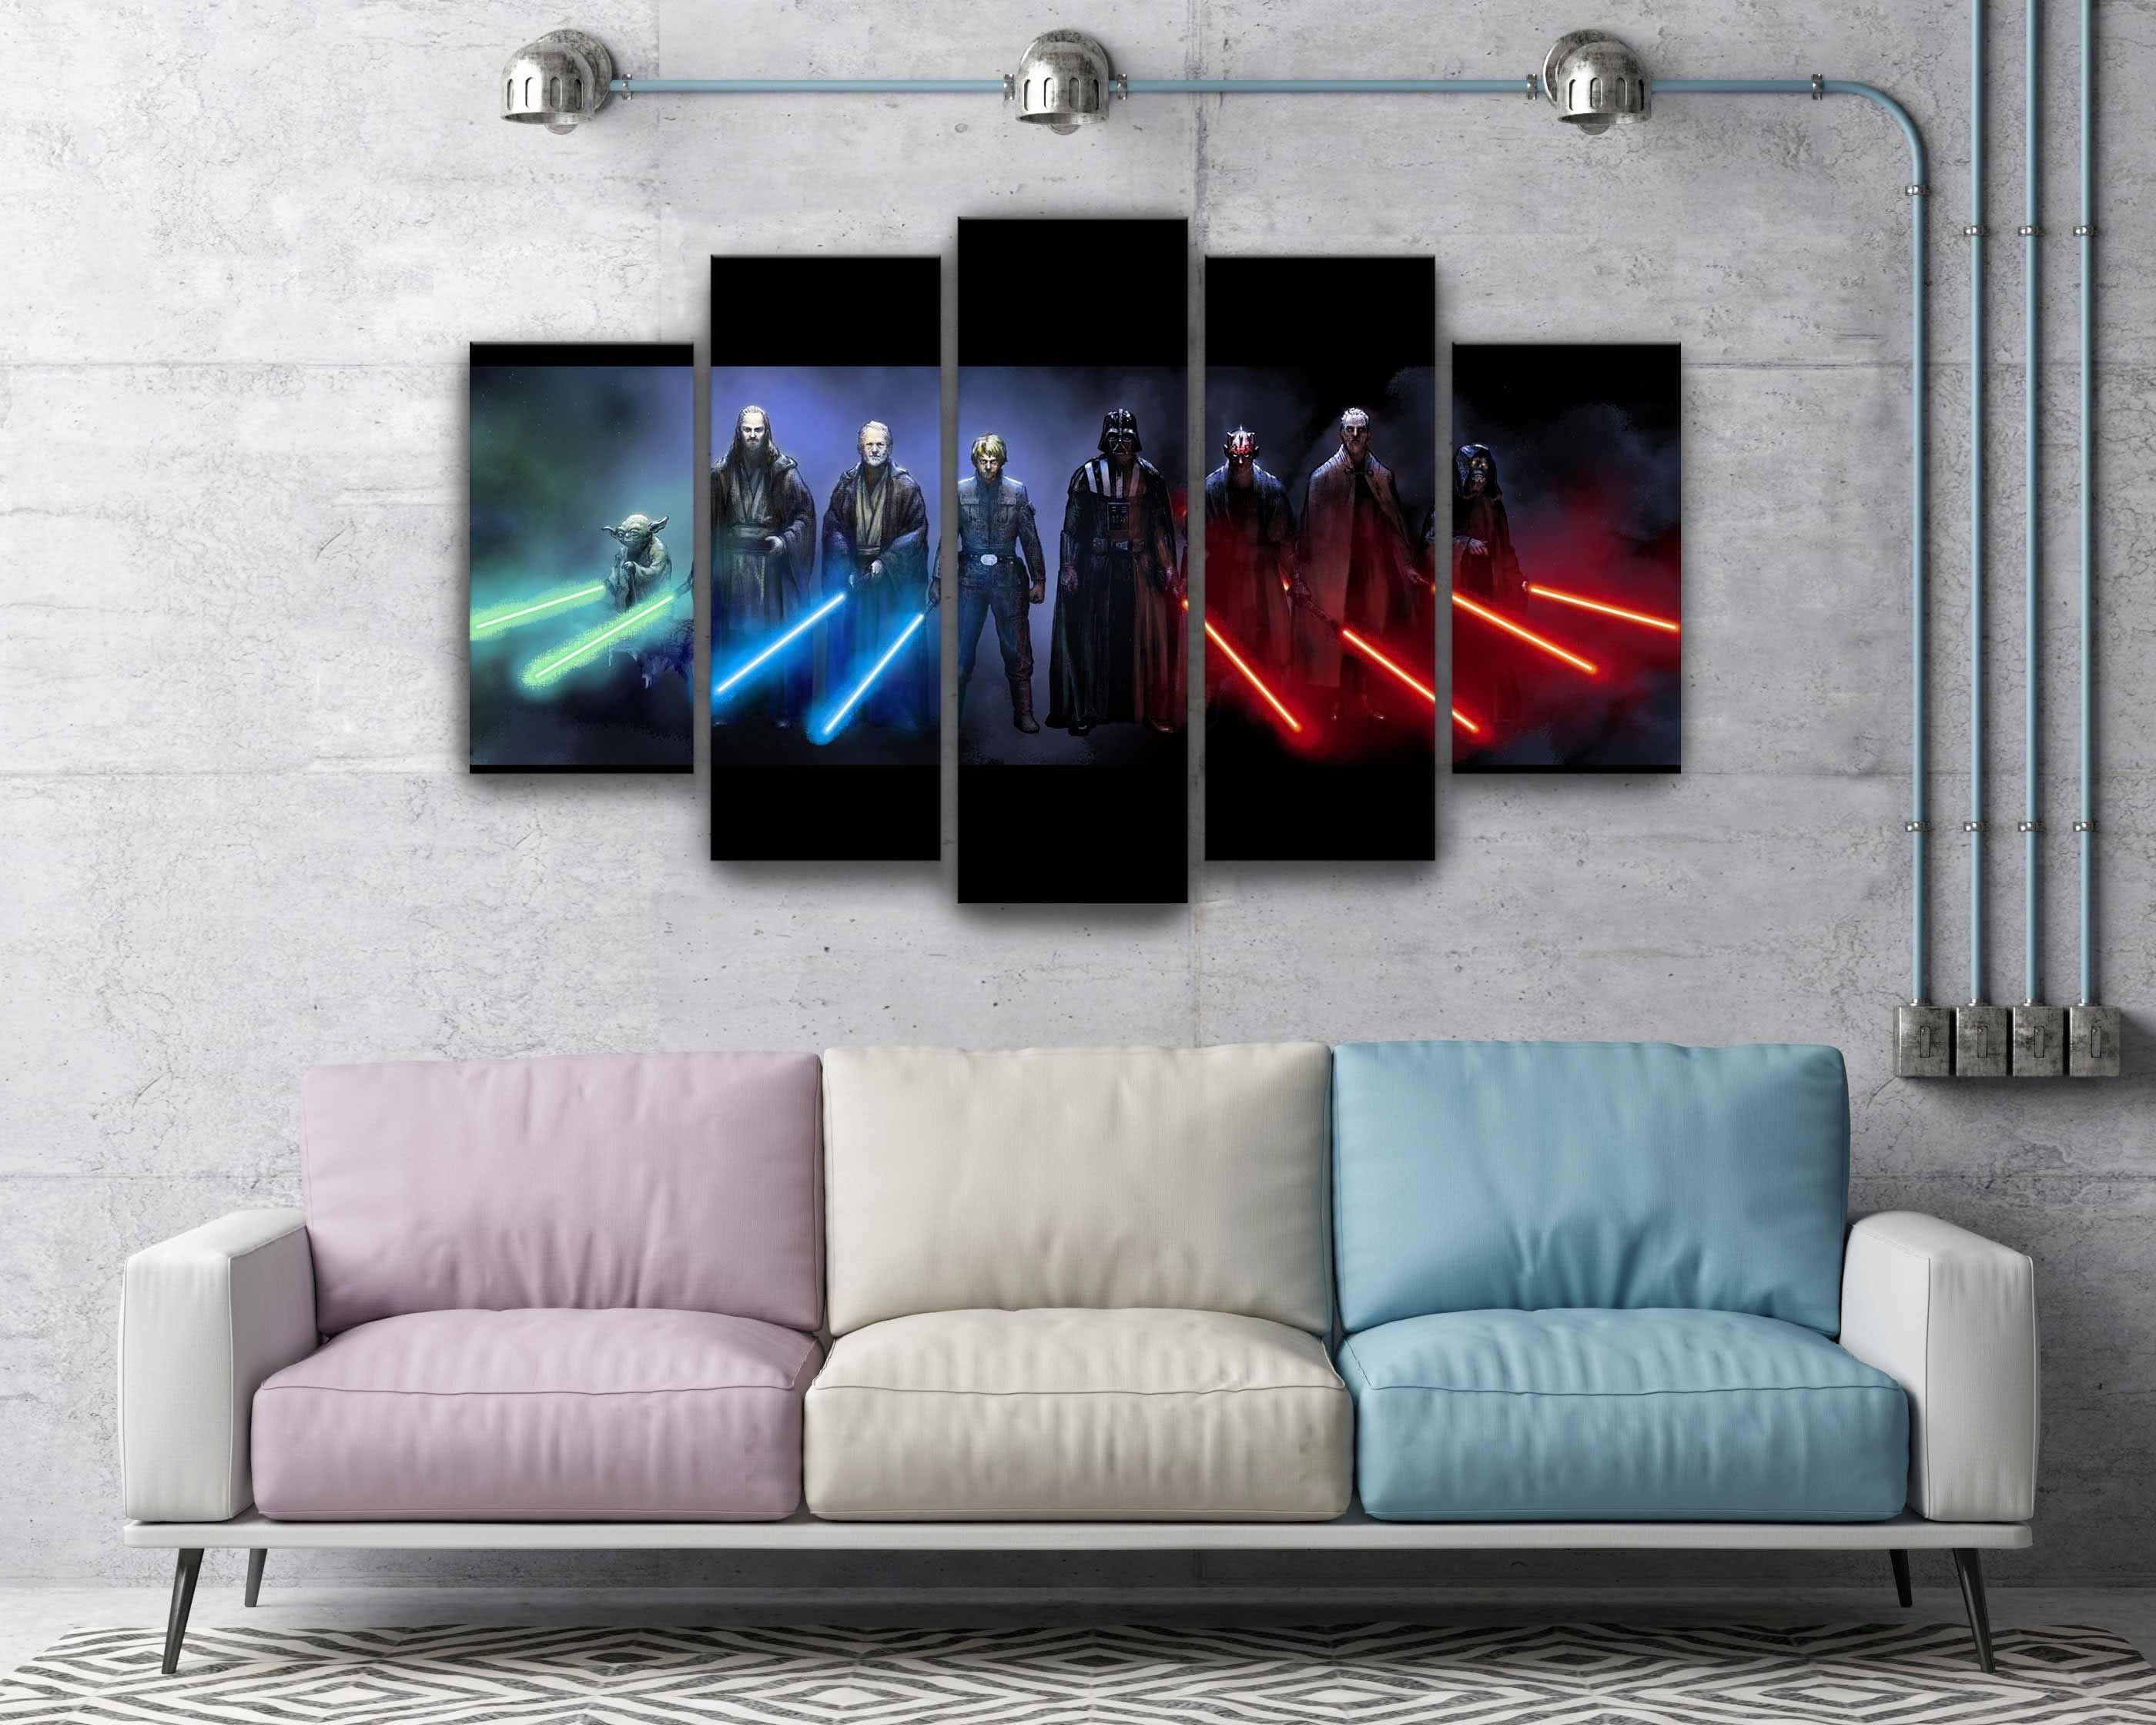 Best And Newest Star Wars Wall Art In Star Wars Darth Vader Luke Skywalker Jedi And Sith Lightsaber Canvas (View 10 of 15)